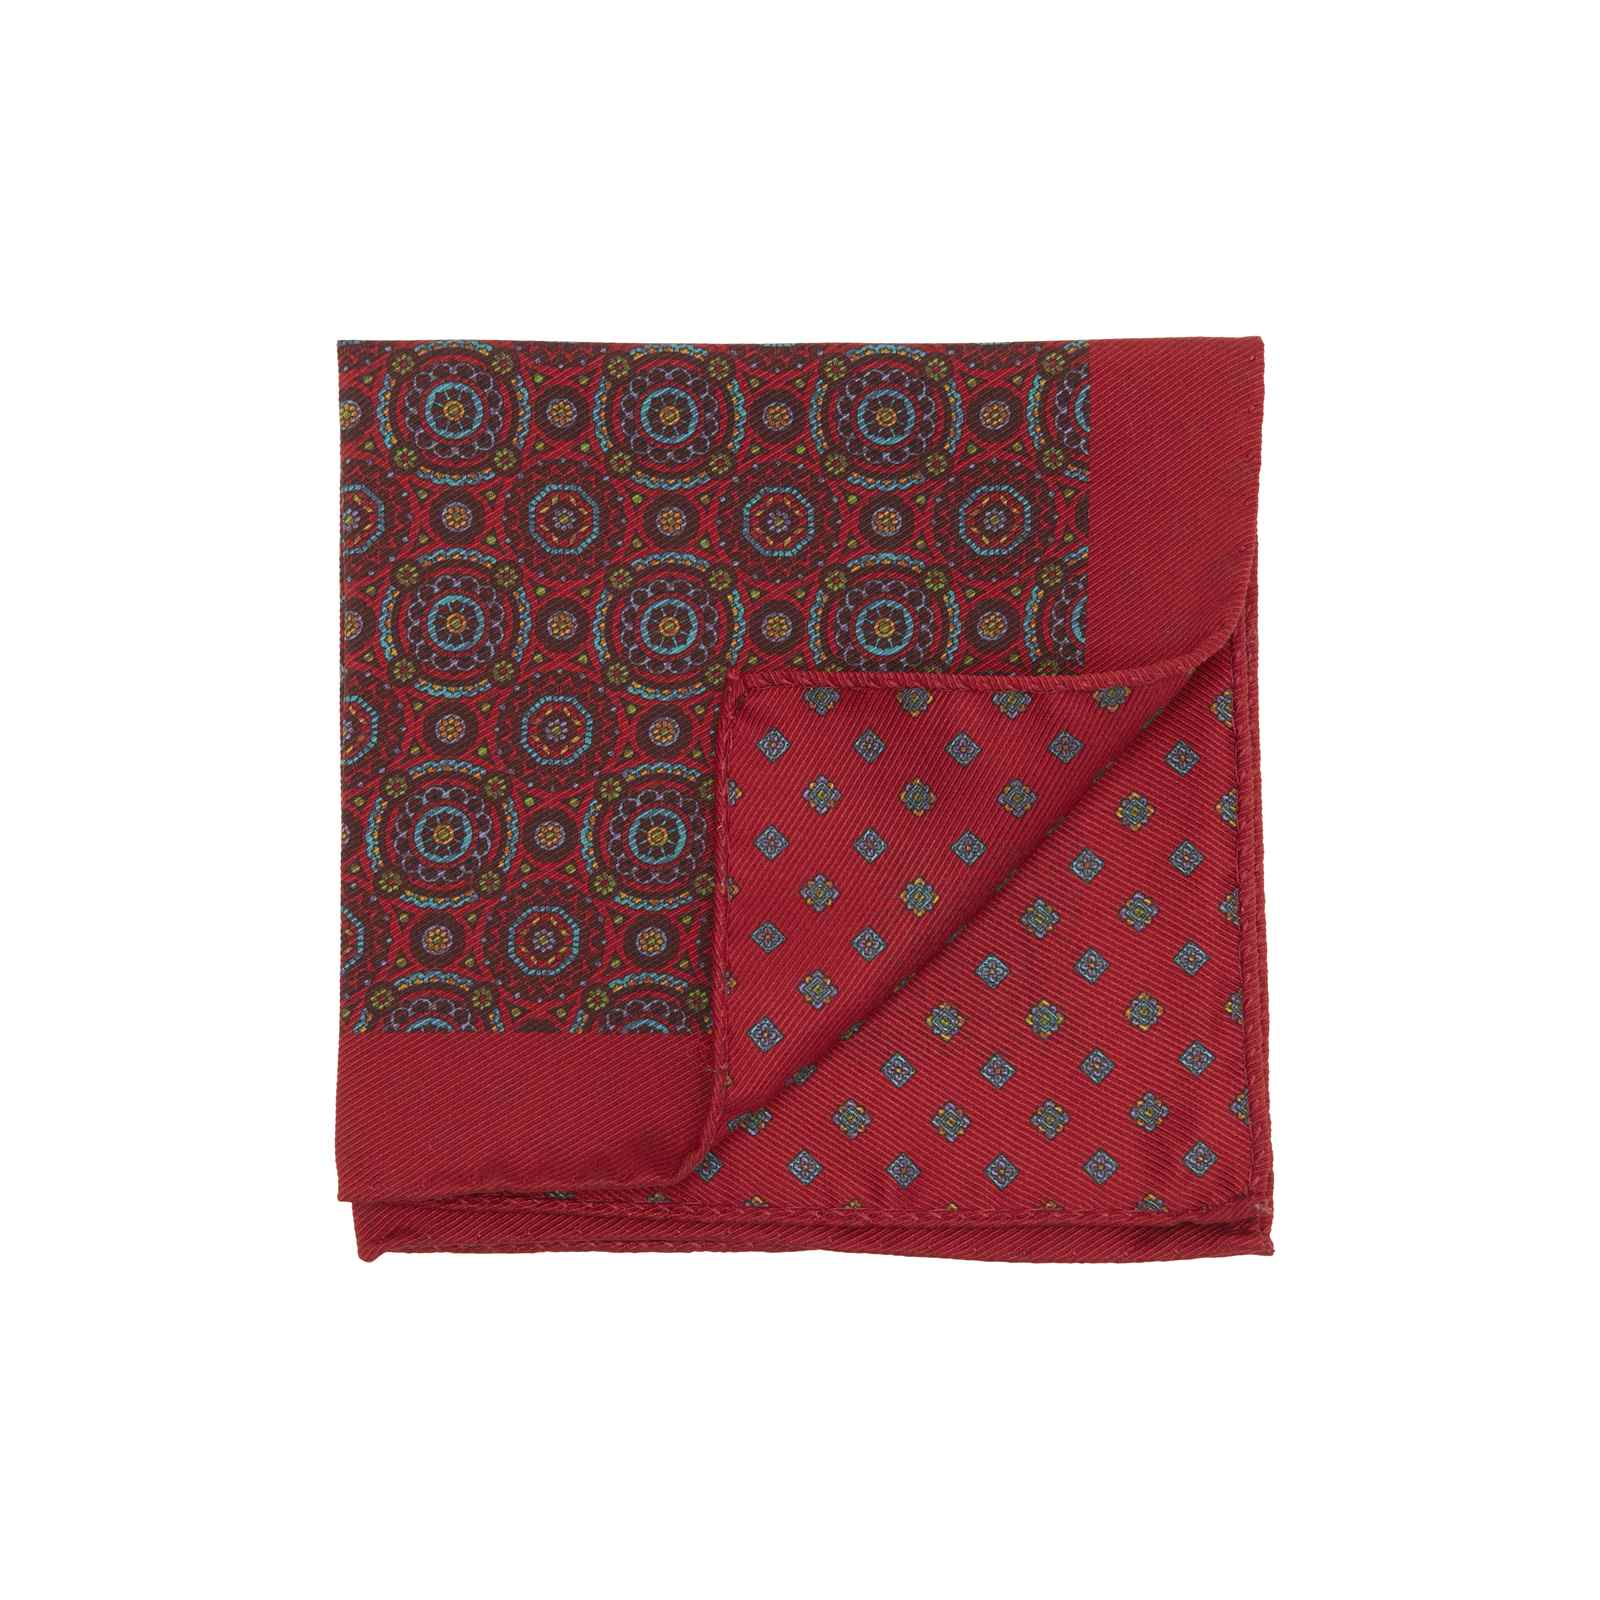 Red Double Sided Pocket Square Multicolor Kaleidoscope Circles and Small Medallions